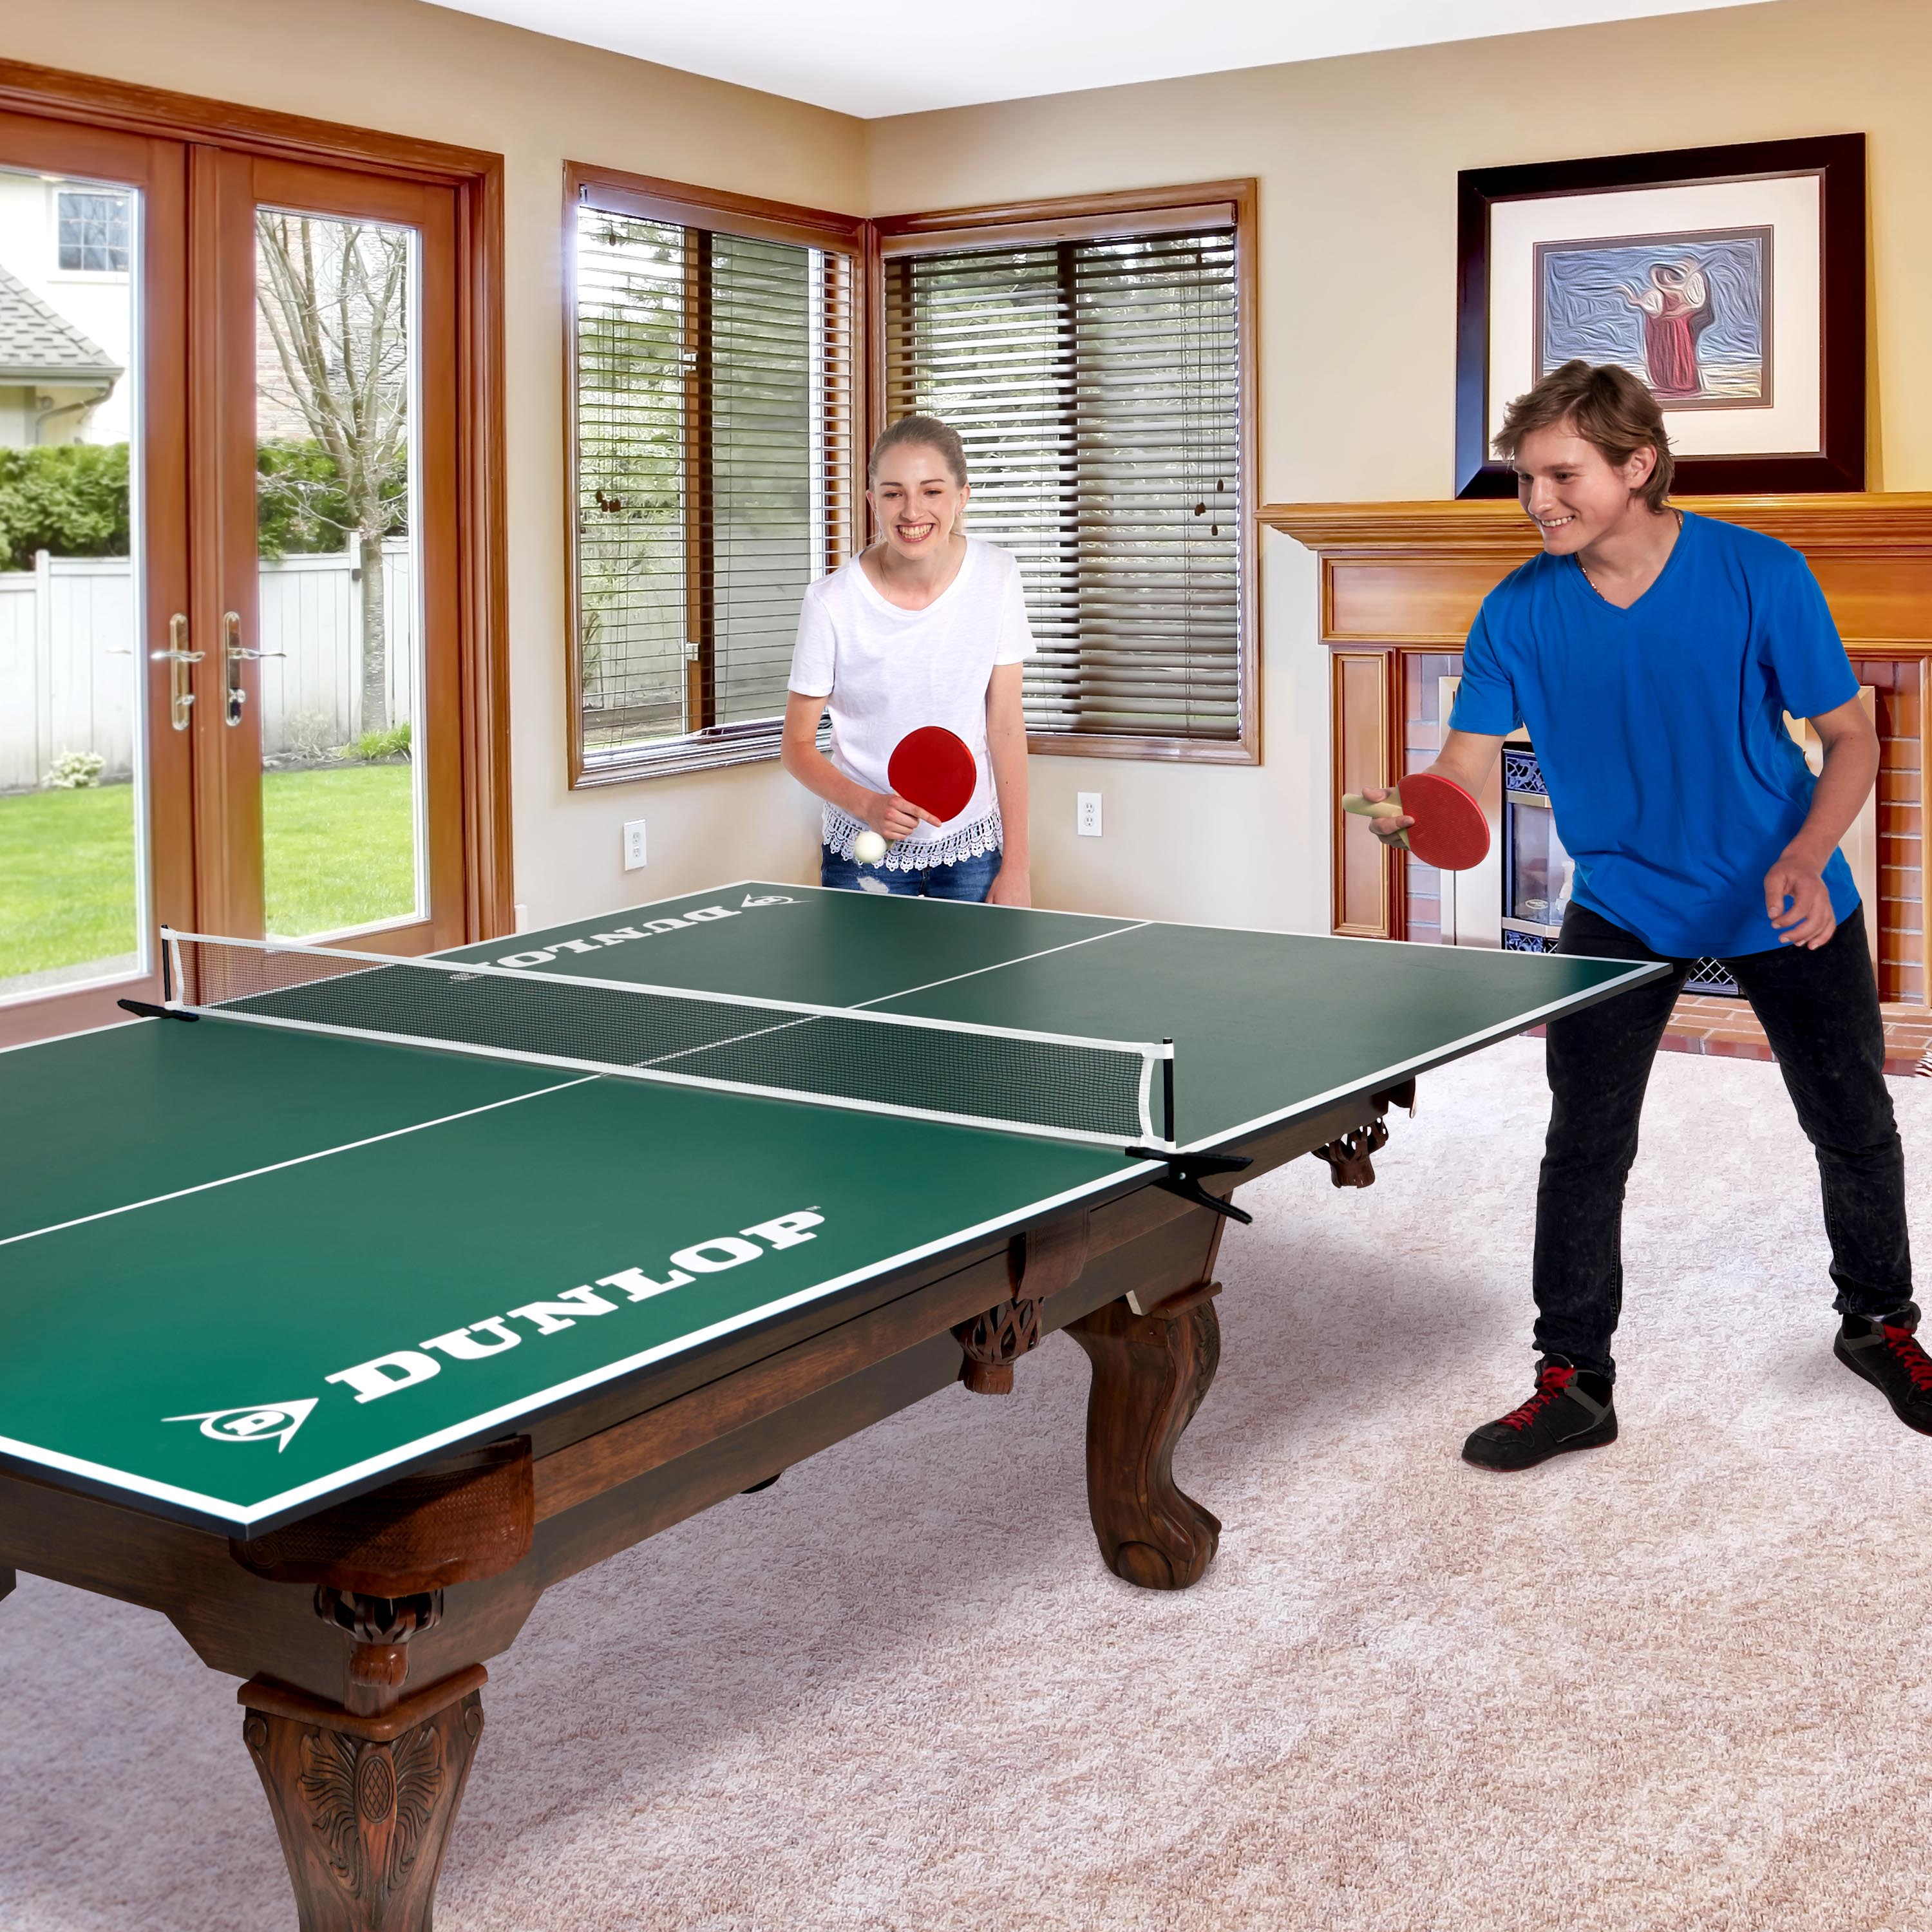 Dunlop Official Size Table Tennis Conversion Top With Premium Clamp Style  Net And Post ...